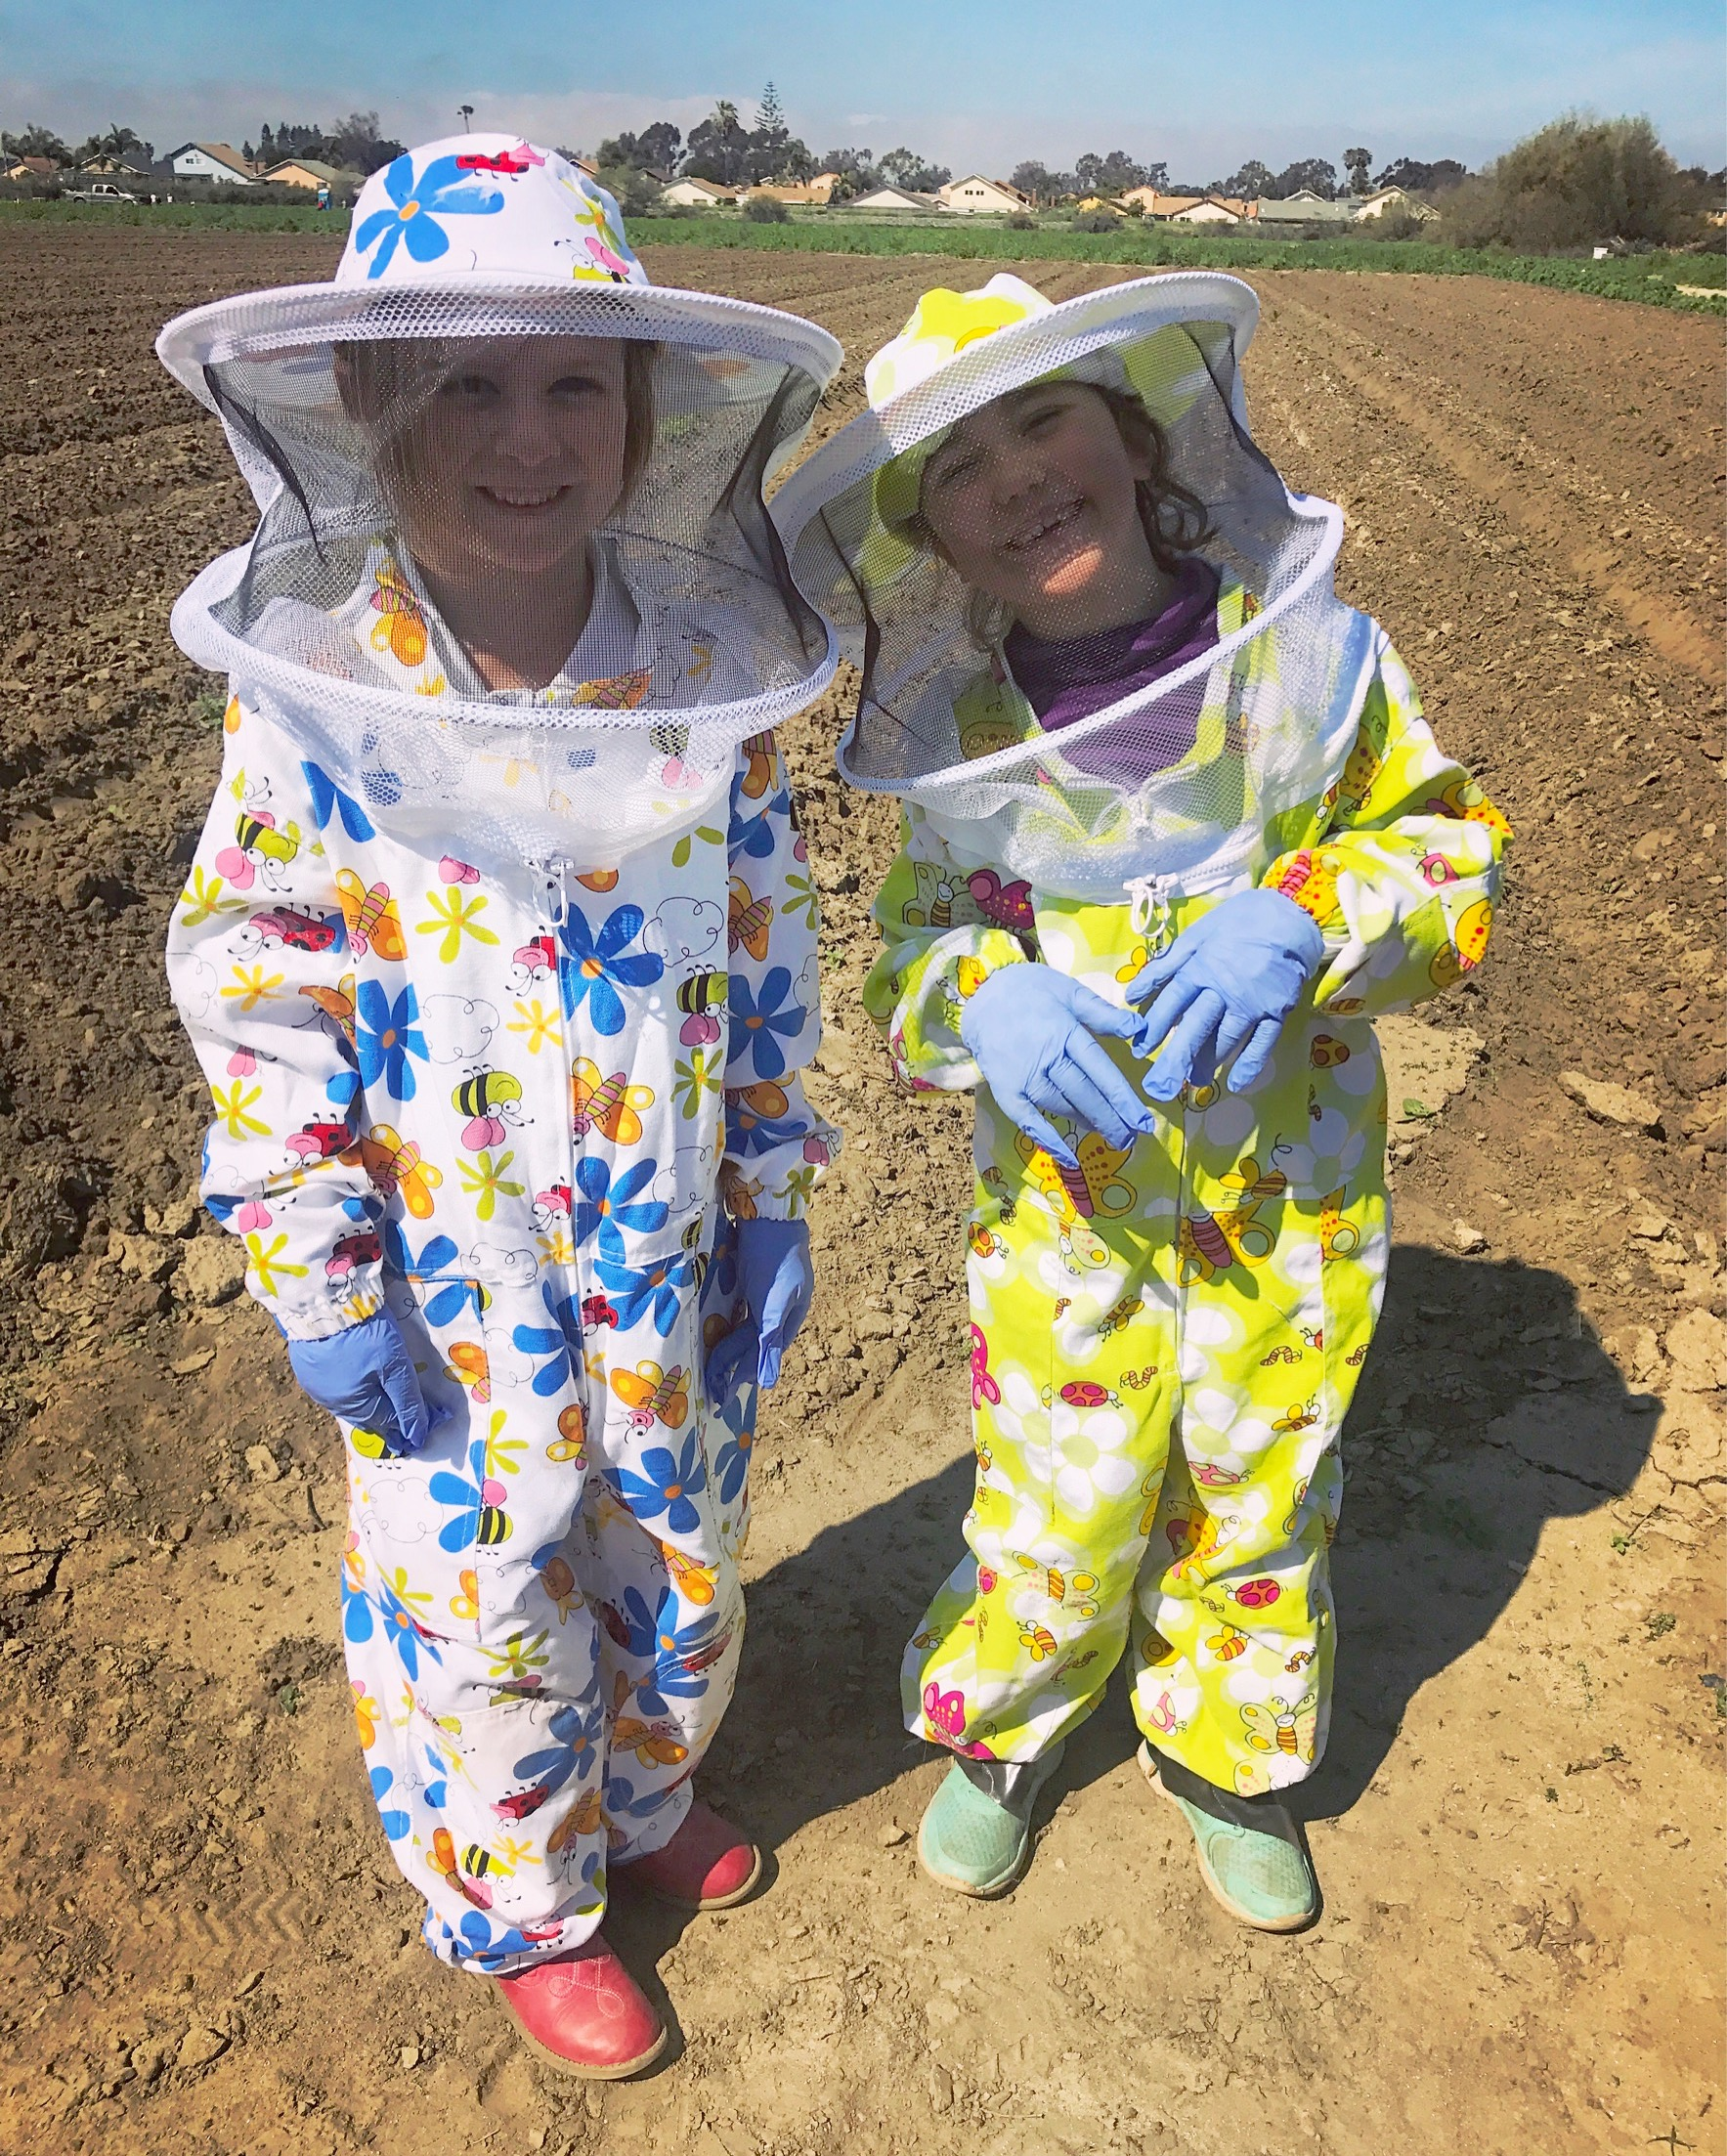 WHAT KIND OF BEE SUIT SHOULD I BUY?